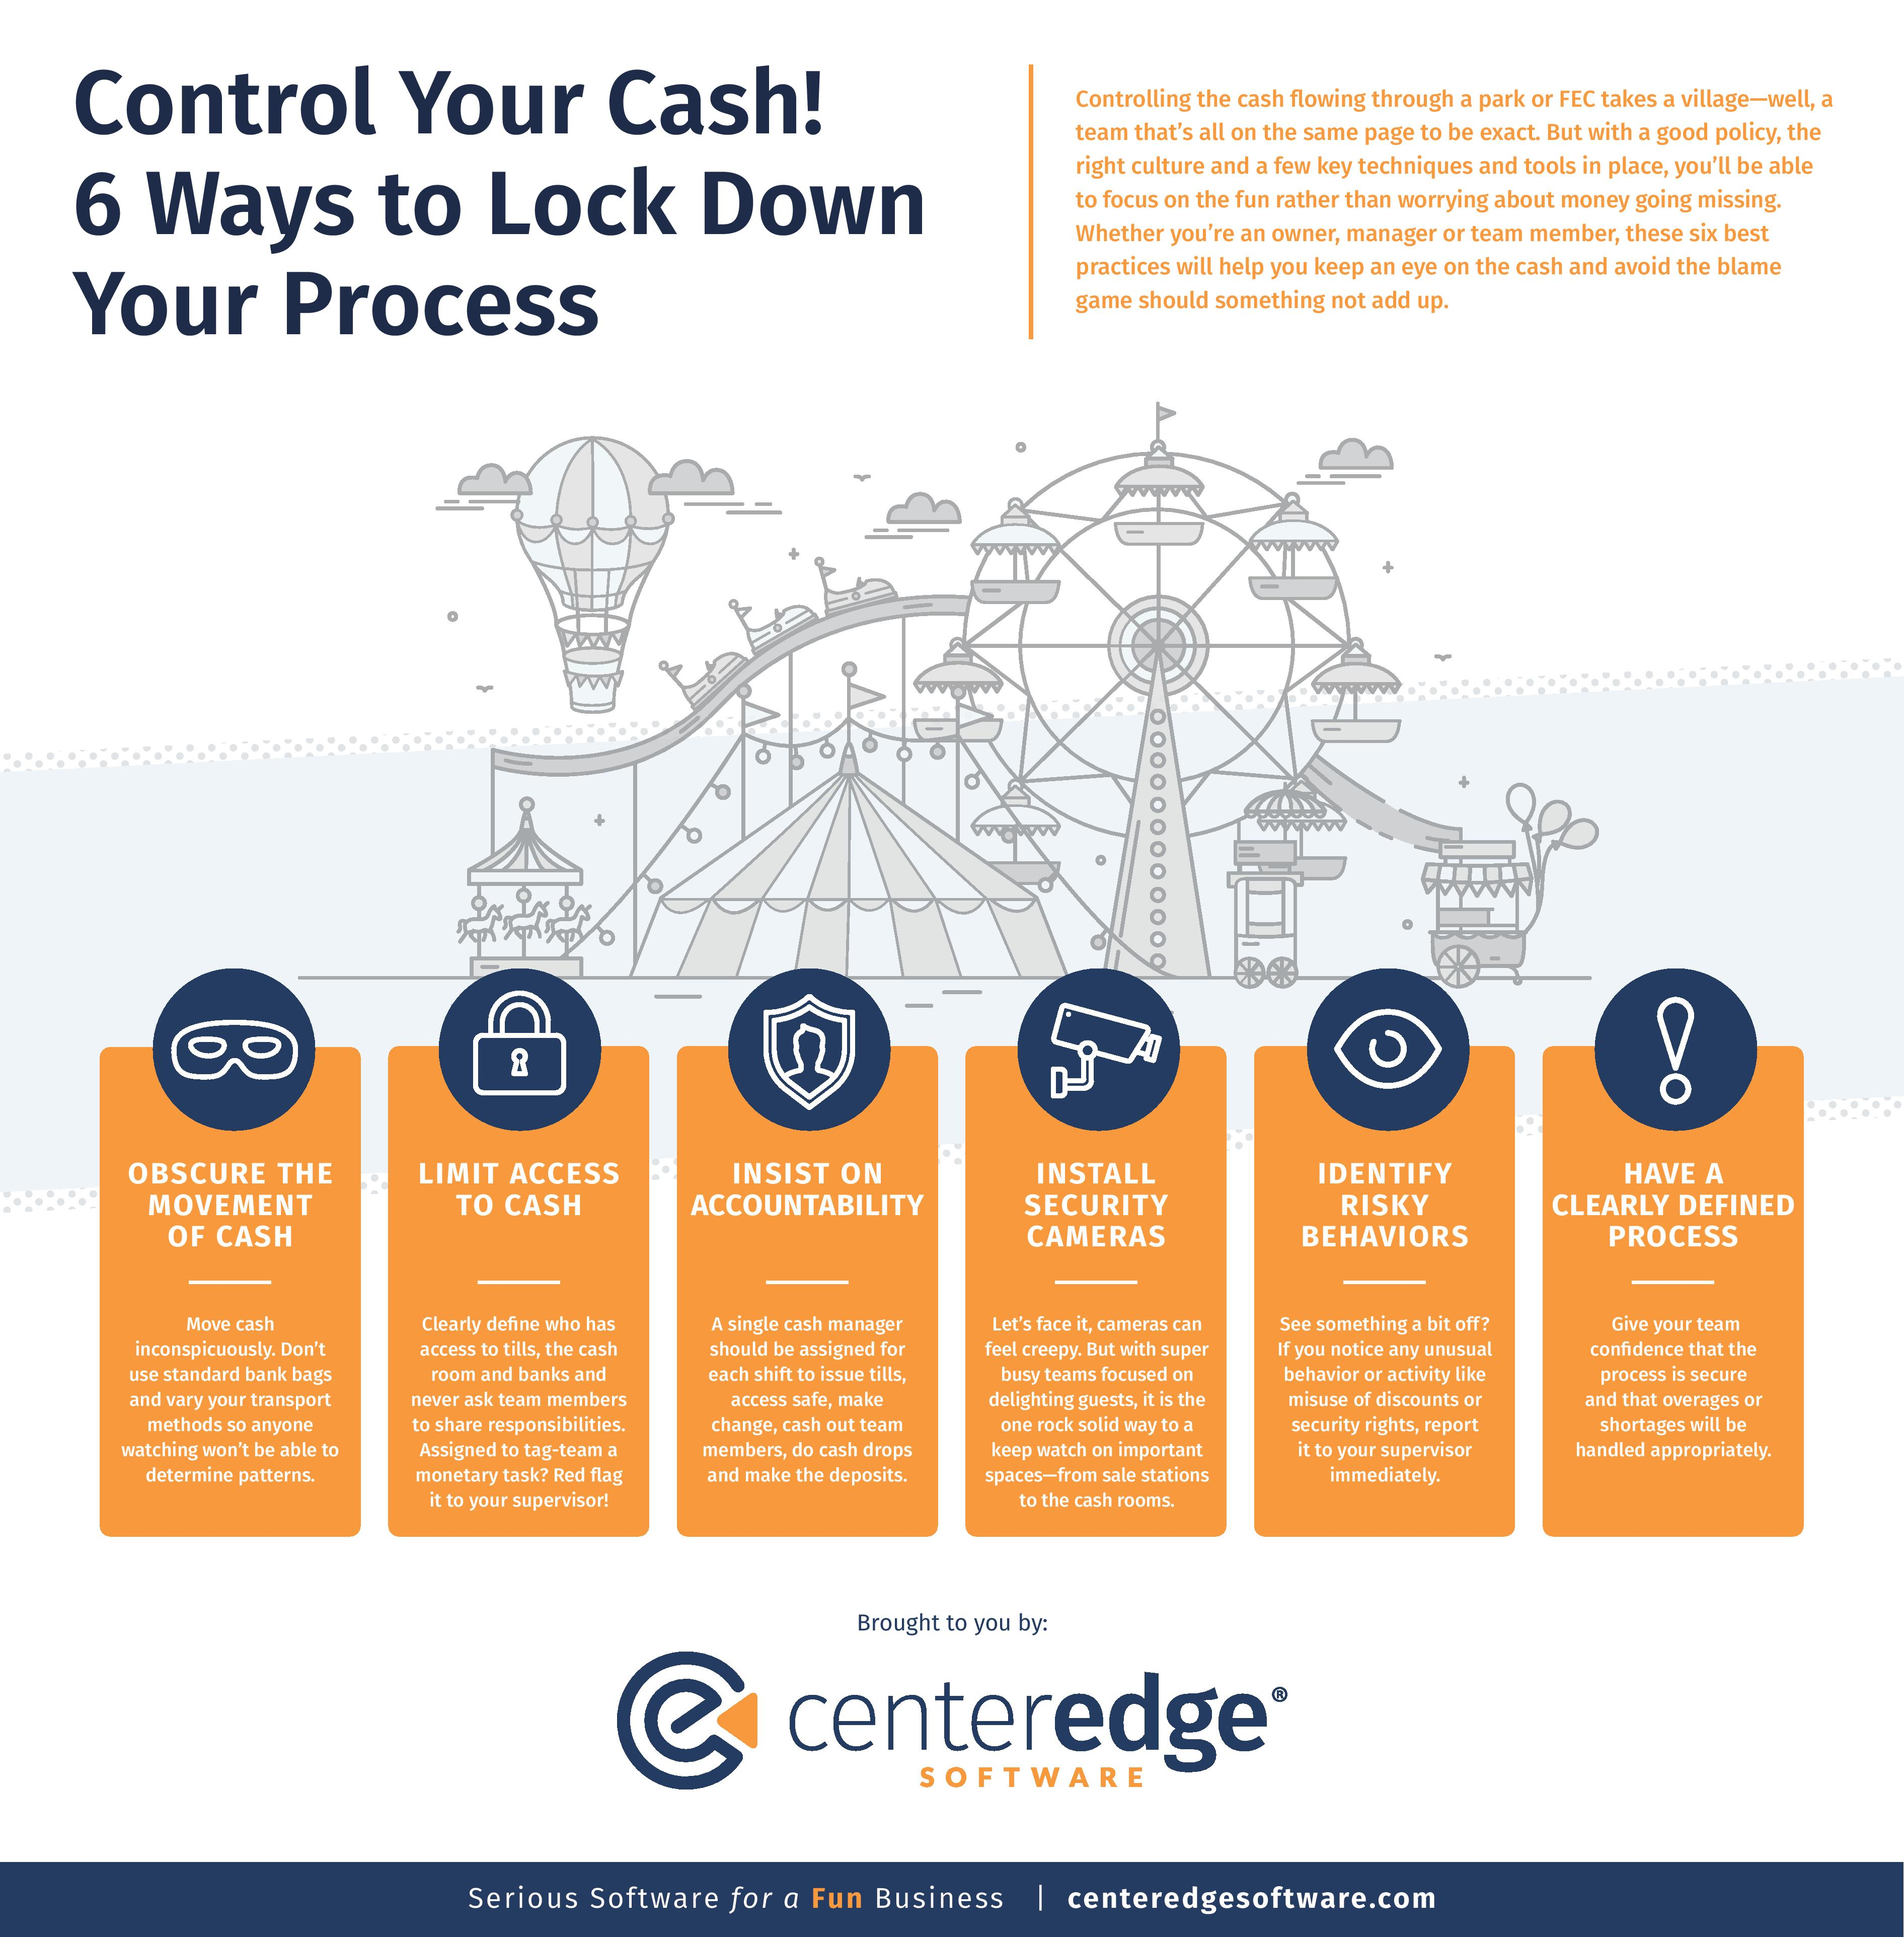 CE_Infographic_CashControl_R4-page-001.jpg